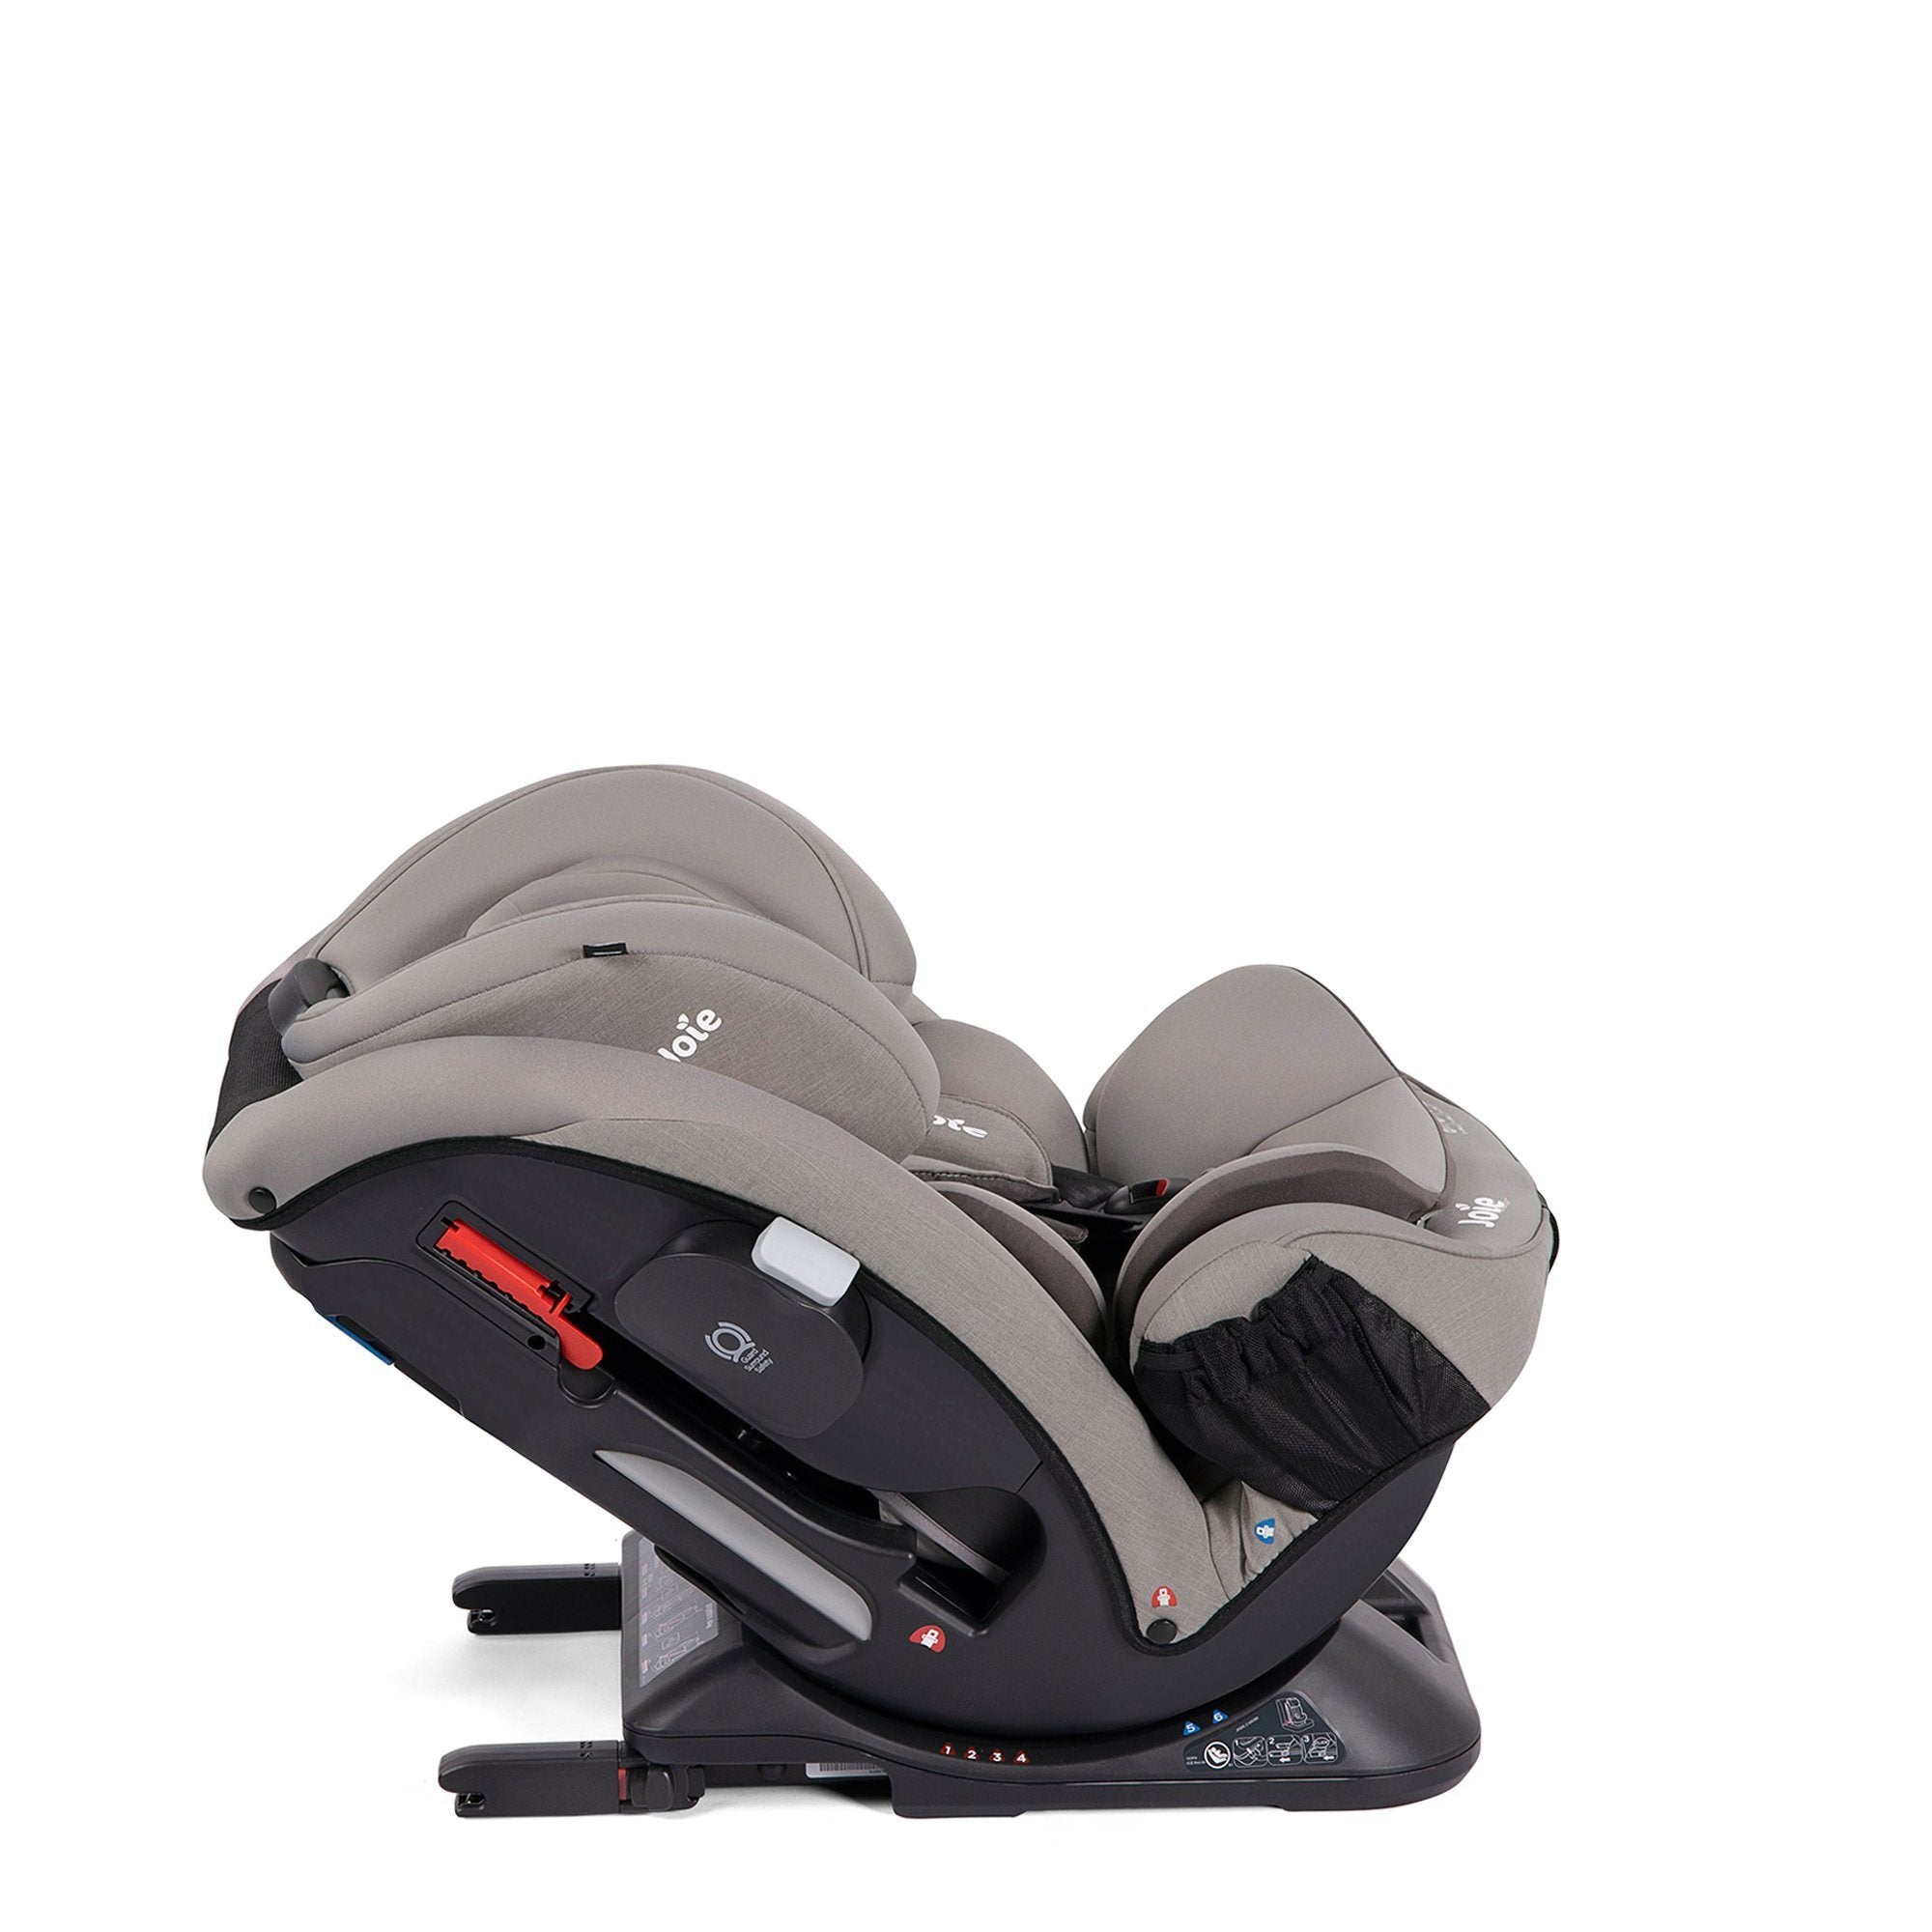 Joie Every Stage FX Group 0+/1/2/3 car seat - Grey Flannel - Pushchair Expert